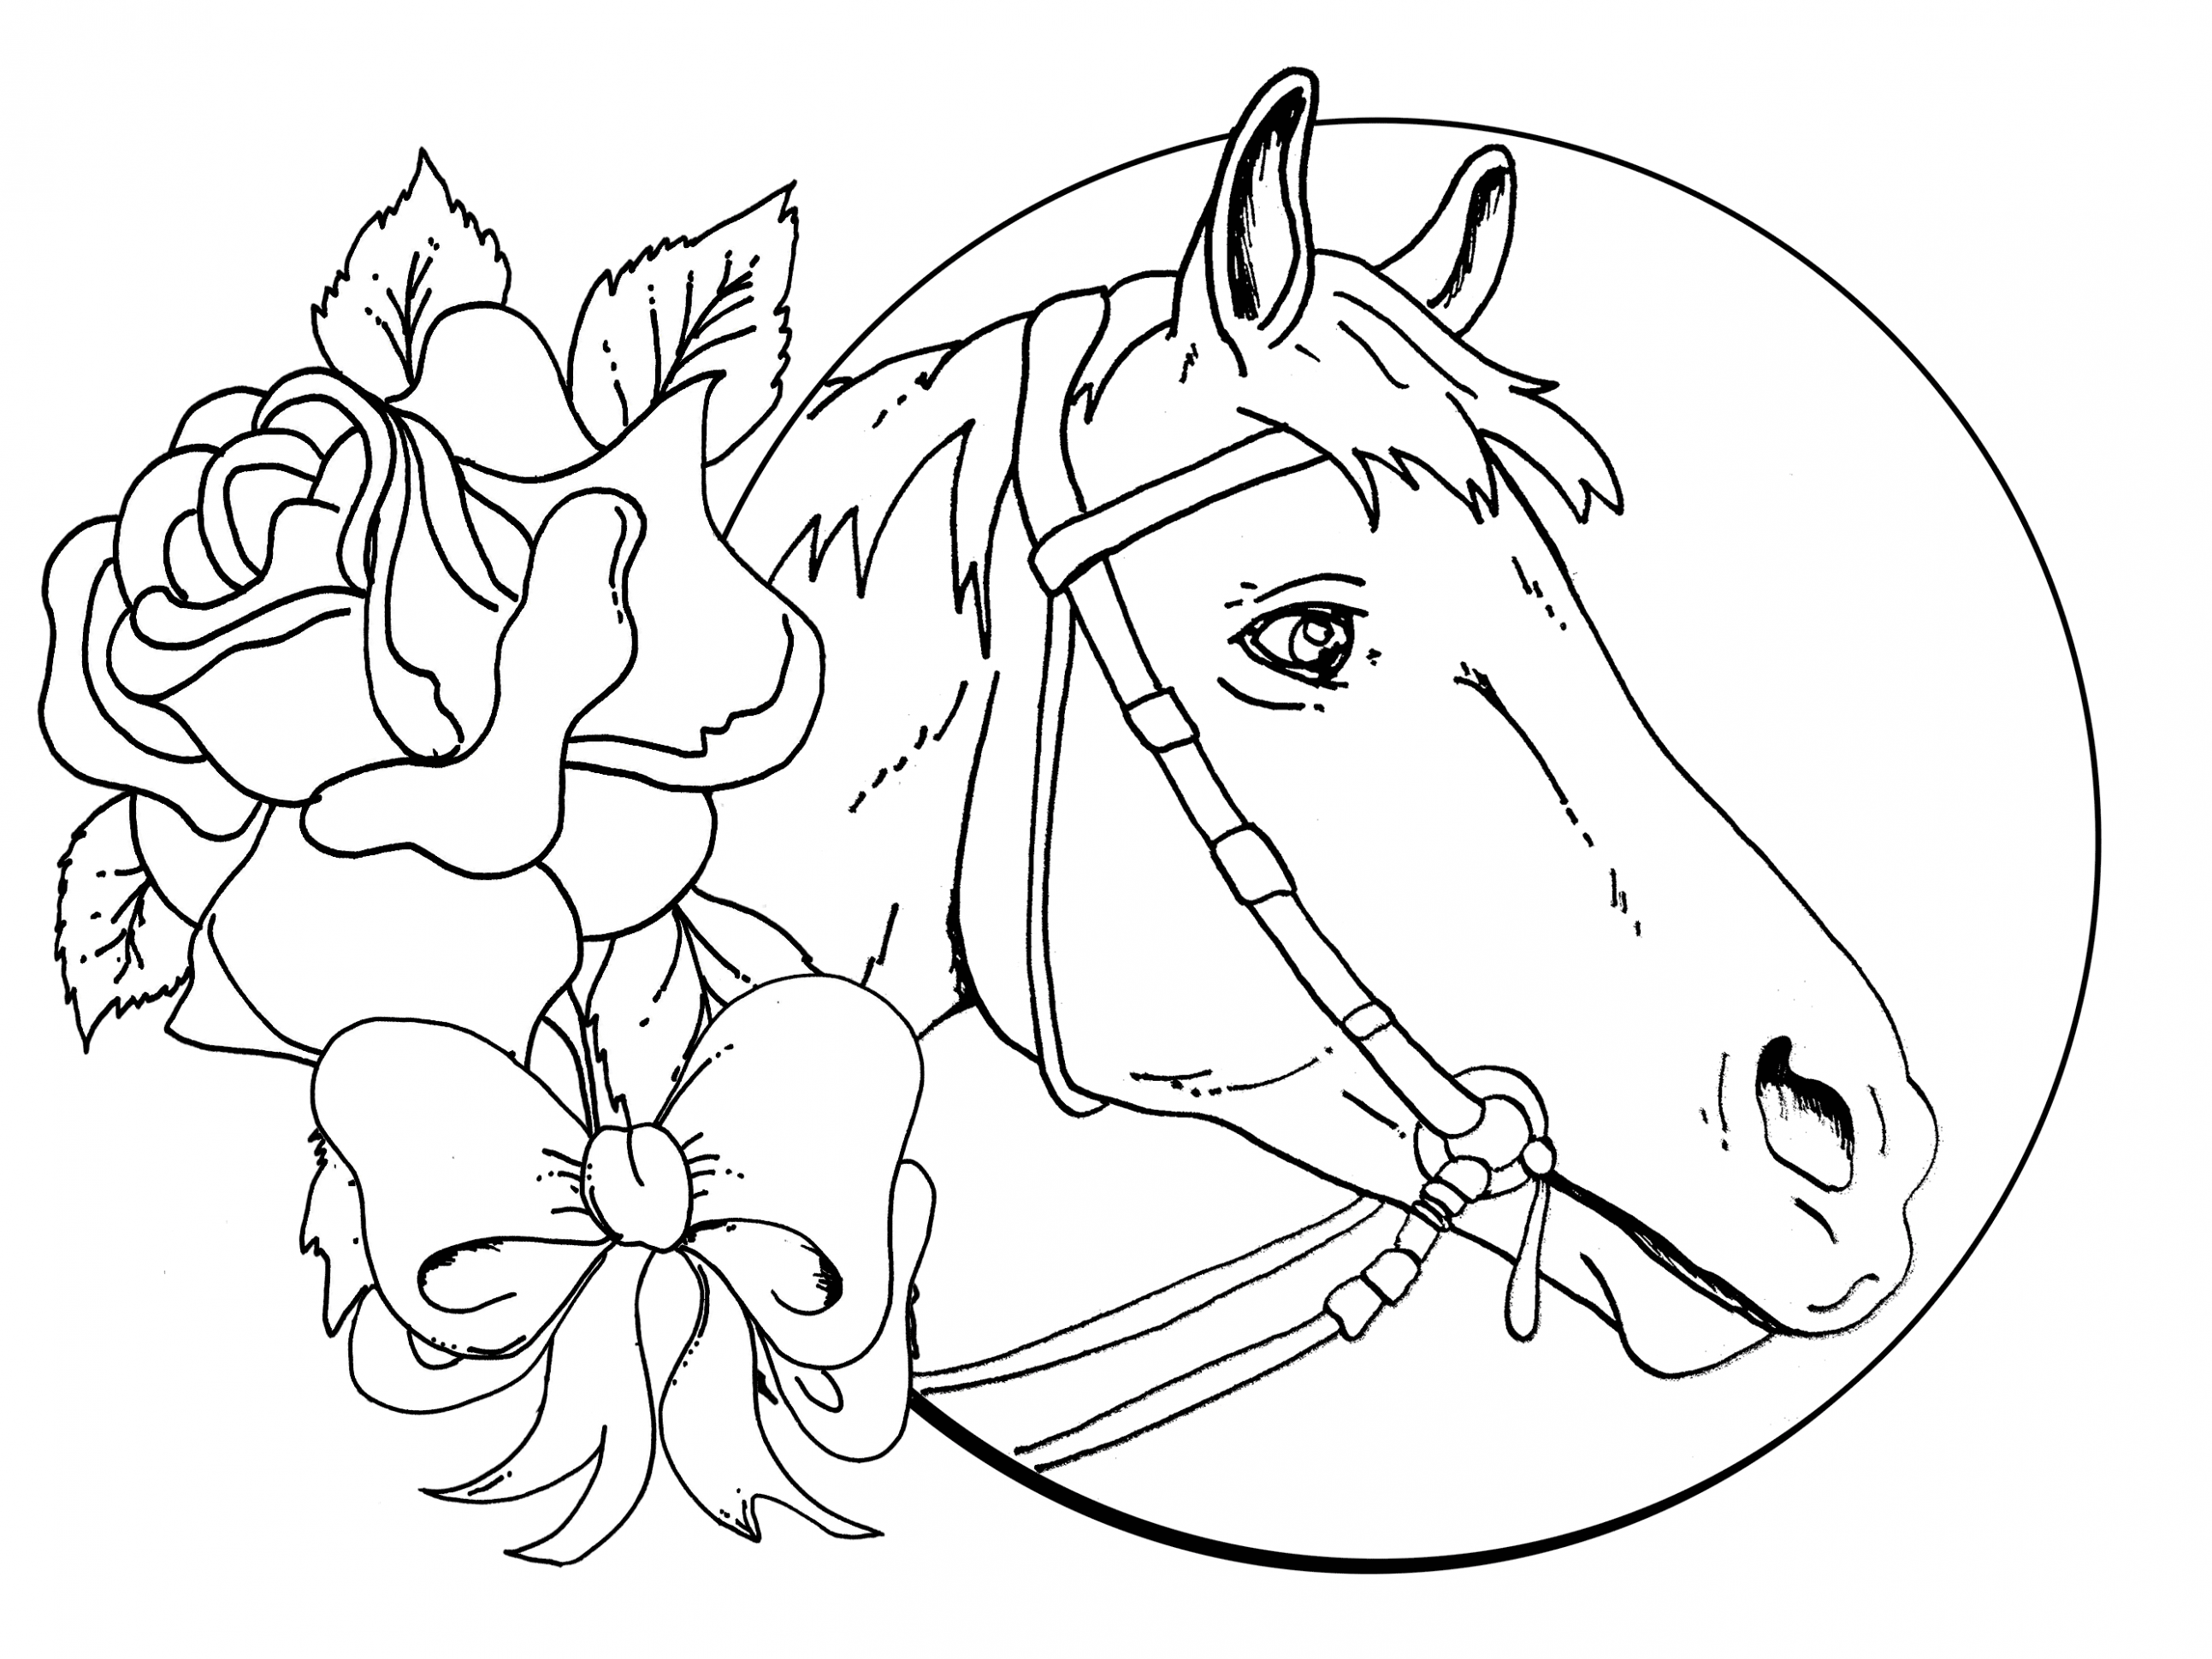 Coloring Pages for Girls – Dr